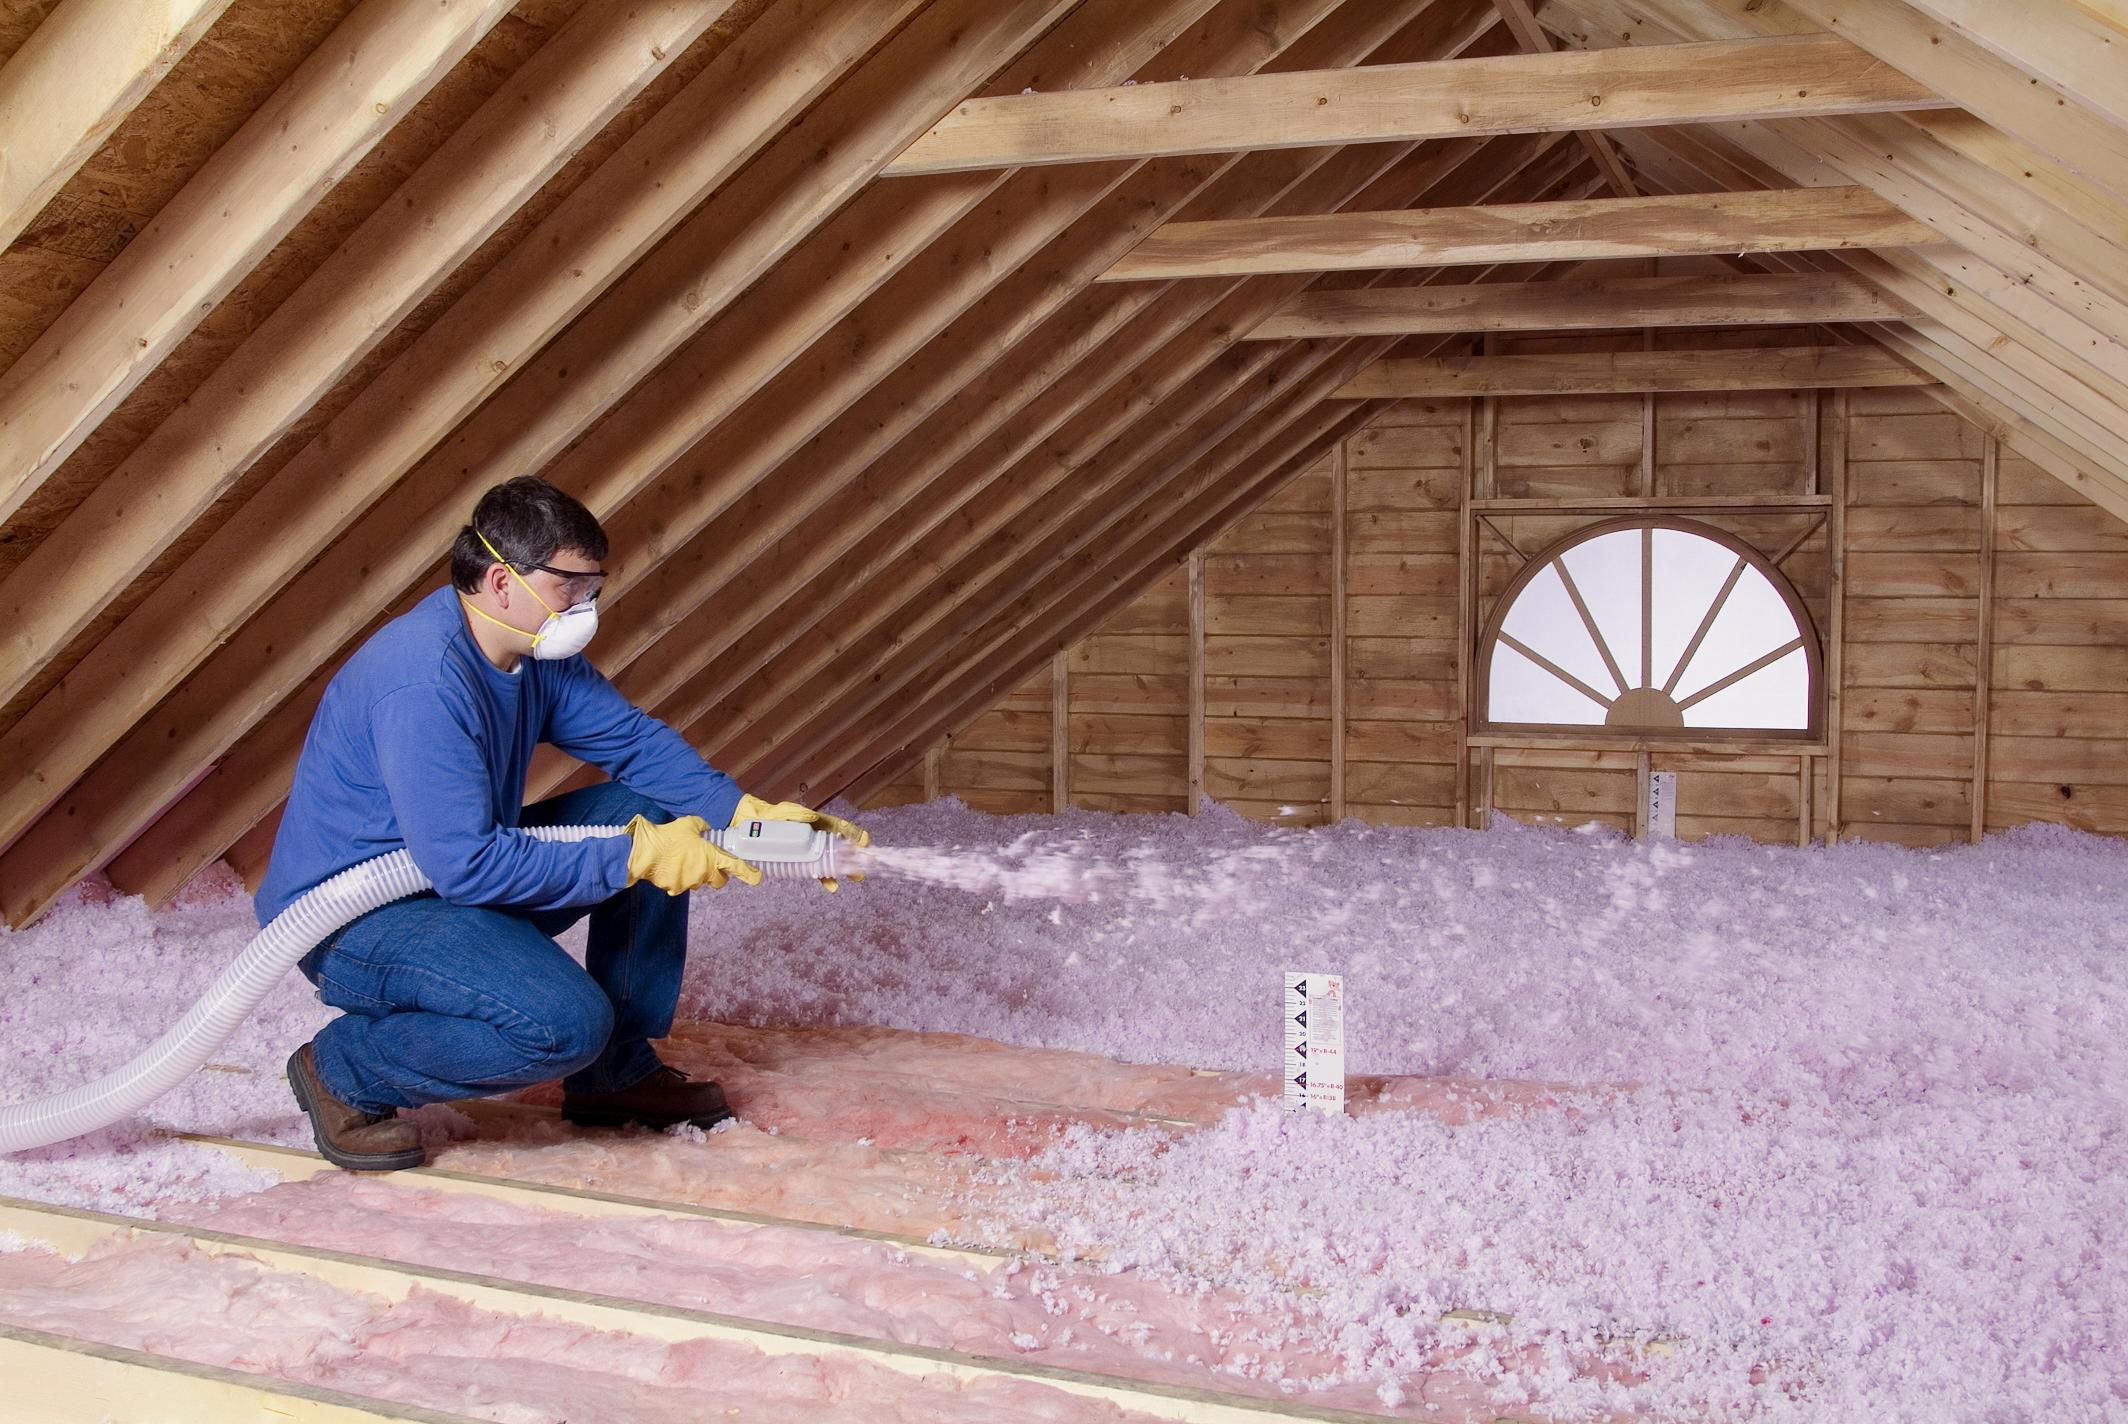 https://envirosmartsolution.com/wp-content/uploads/2019/06/Atticinsulation.jpg